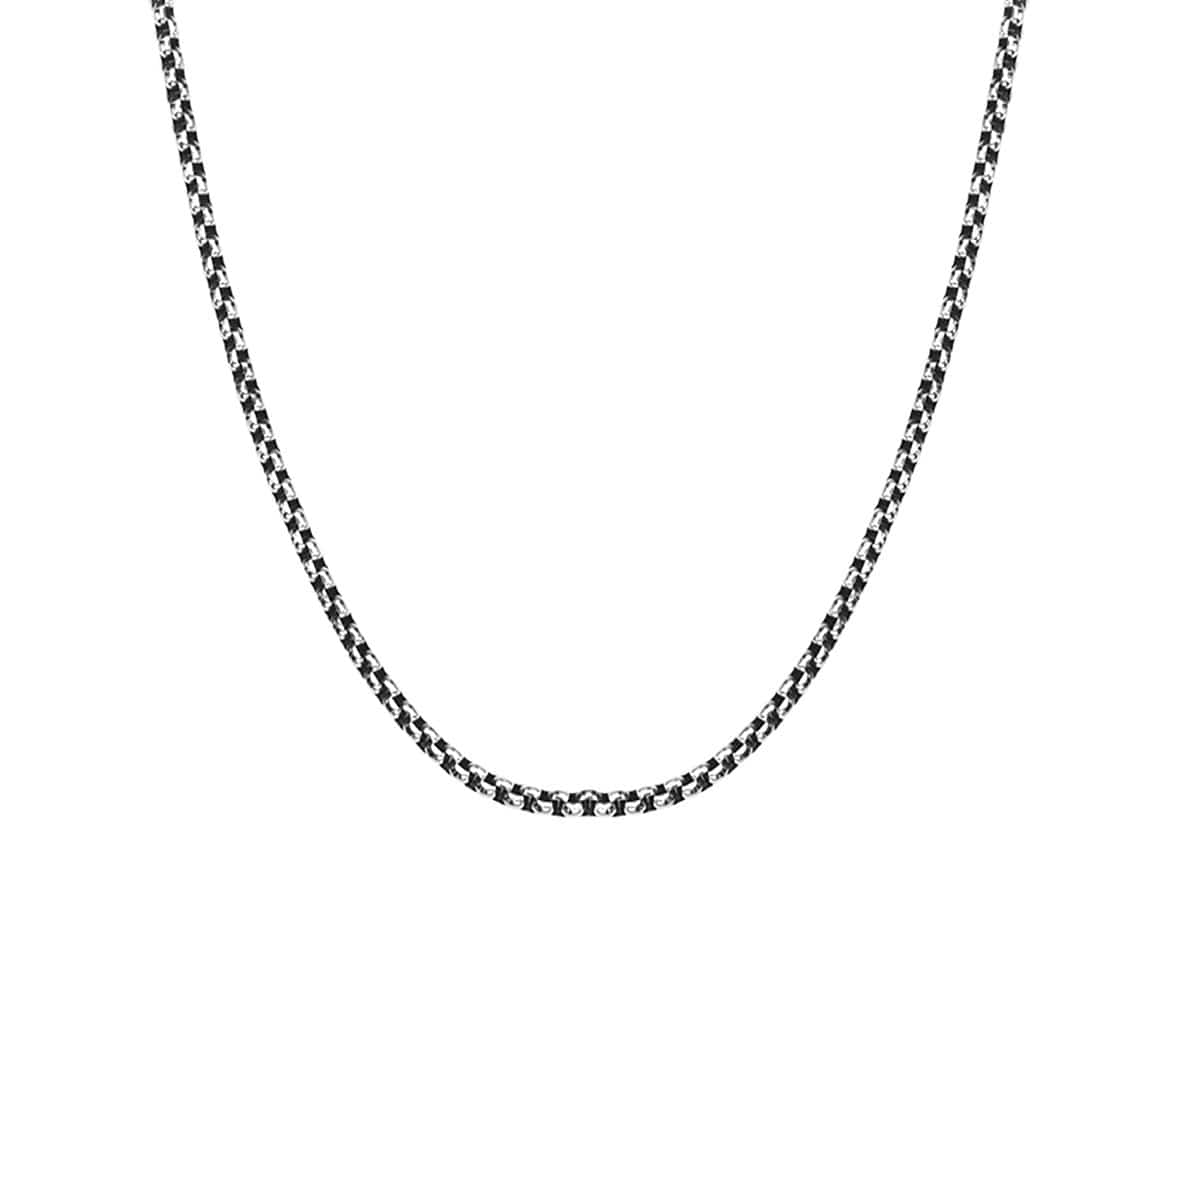 Darkened Silver Stainless Steel 4mm Bold Box Chain Chains